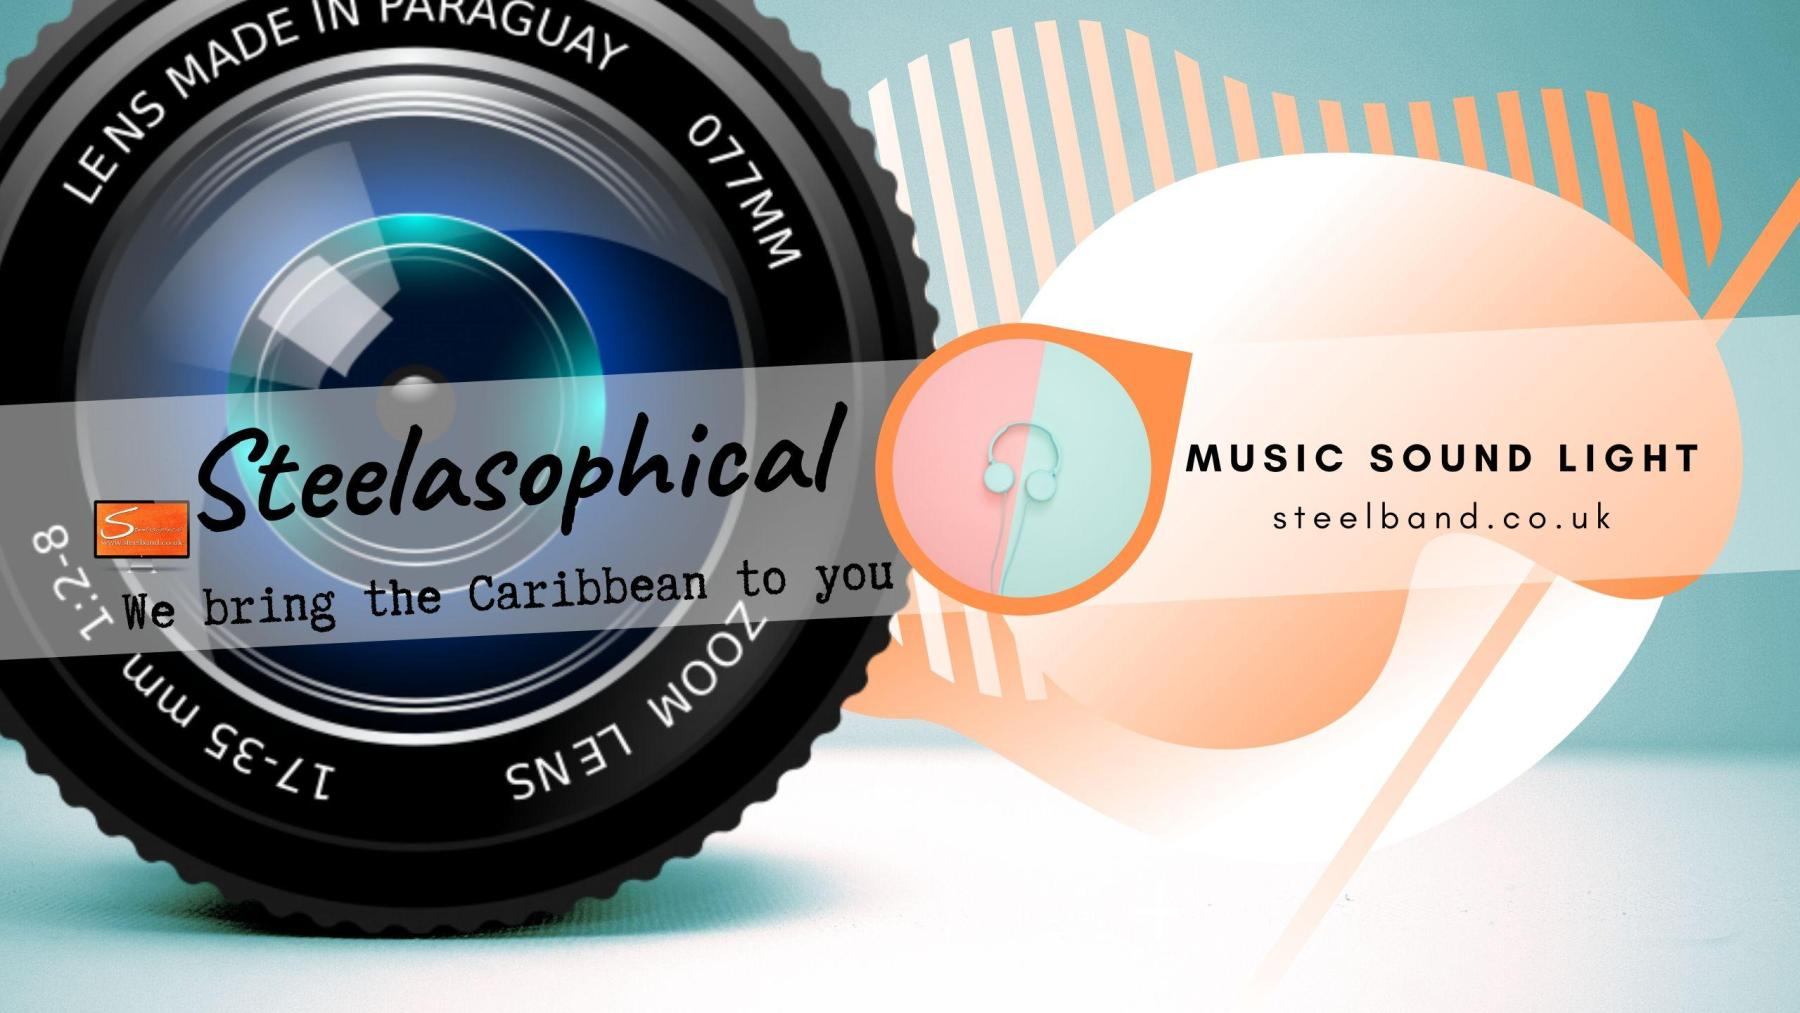 Steelasophical SteelBand for Hire UK steelpans Steeldrums Caribbean Music 01r